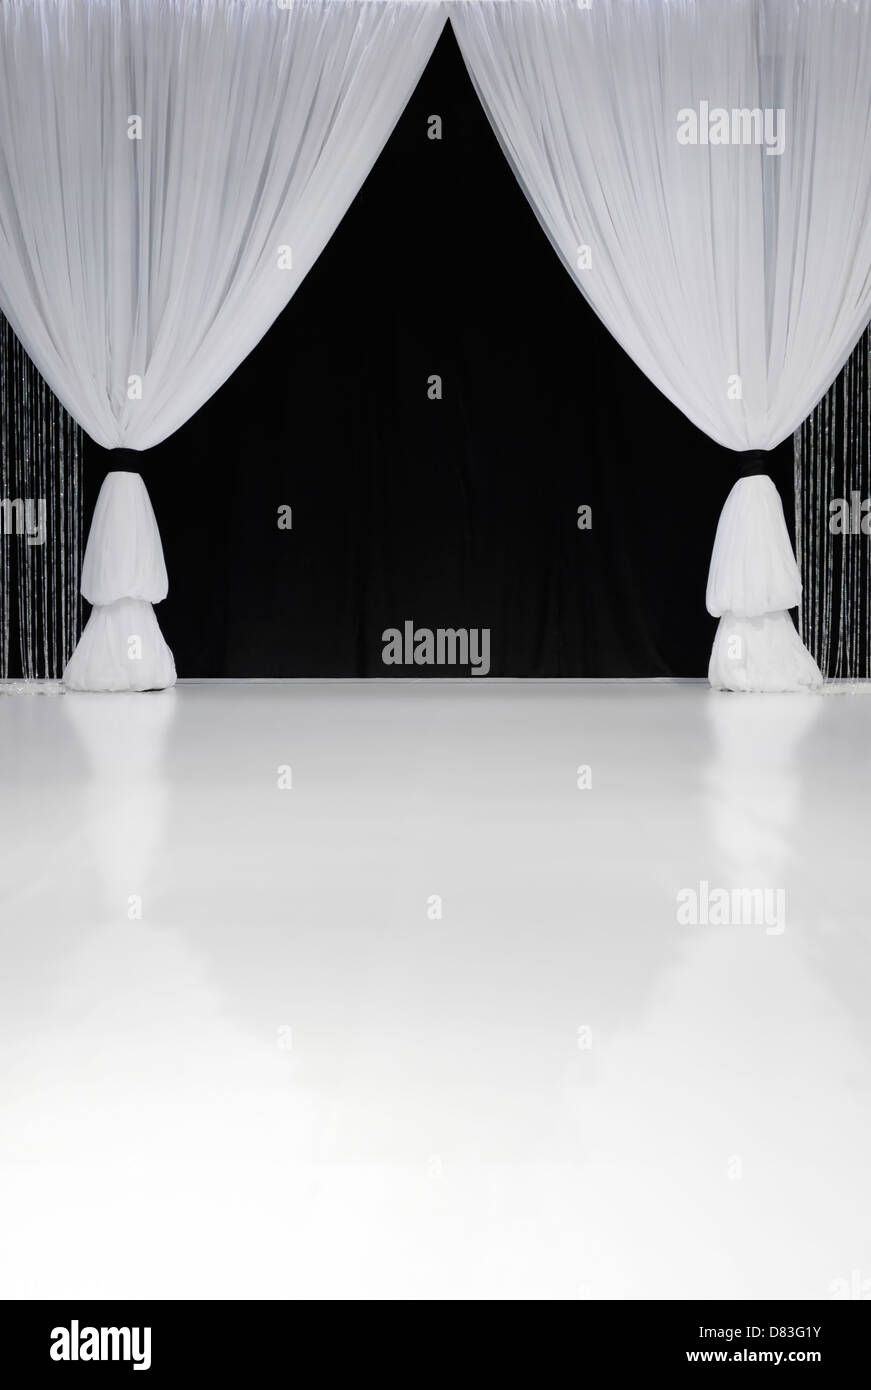 White stage curtains over black curtains in the background - Stock Image